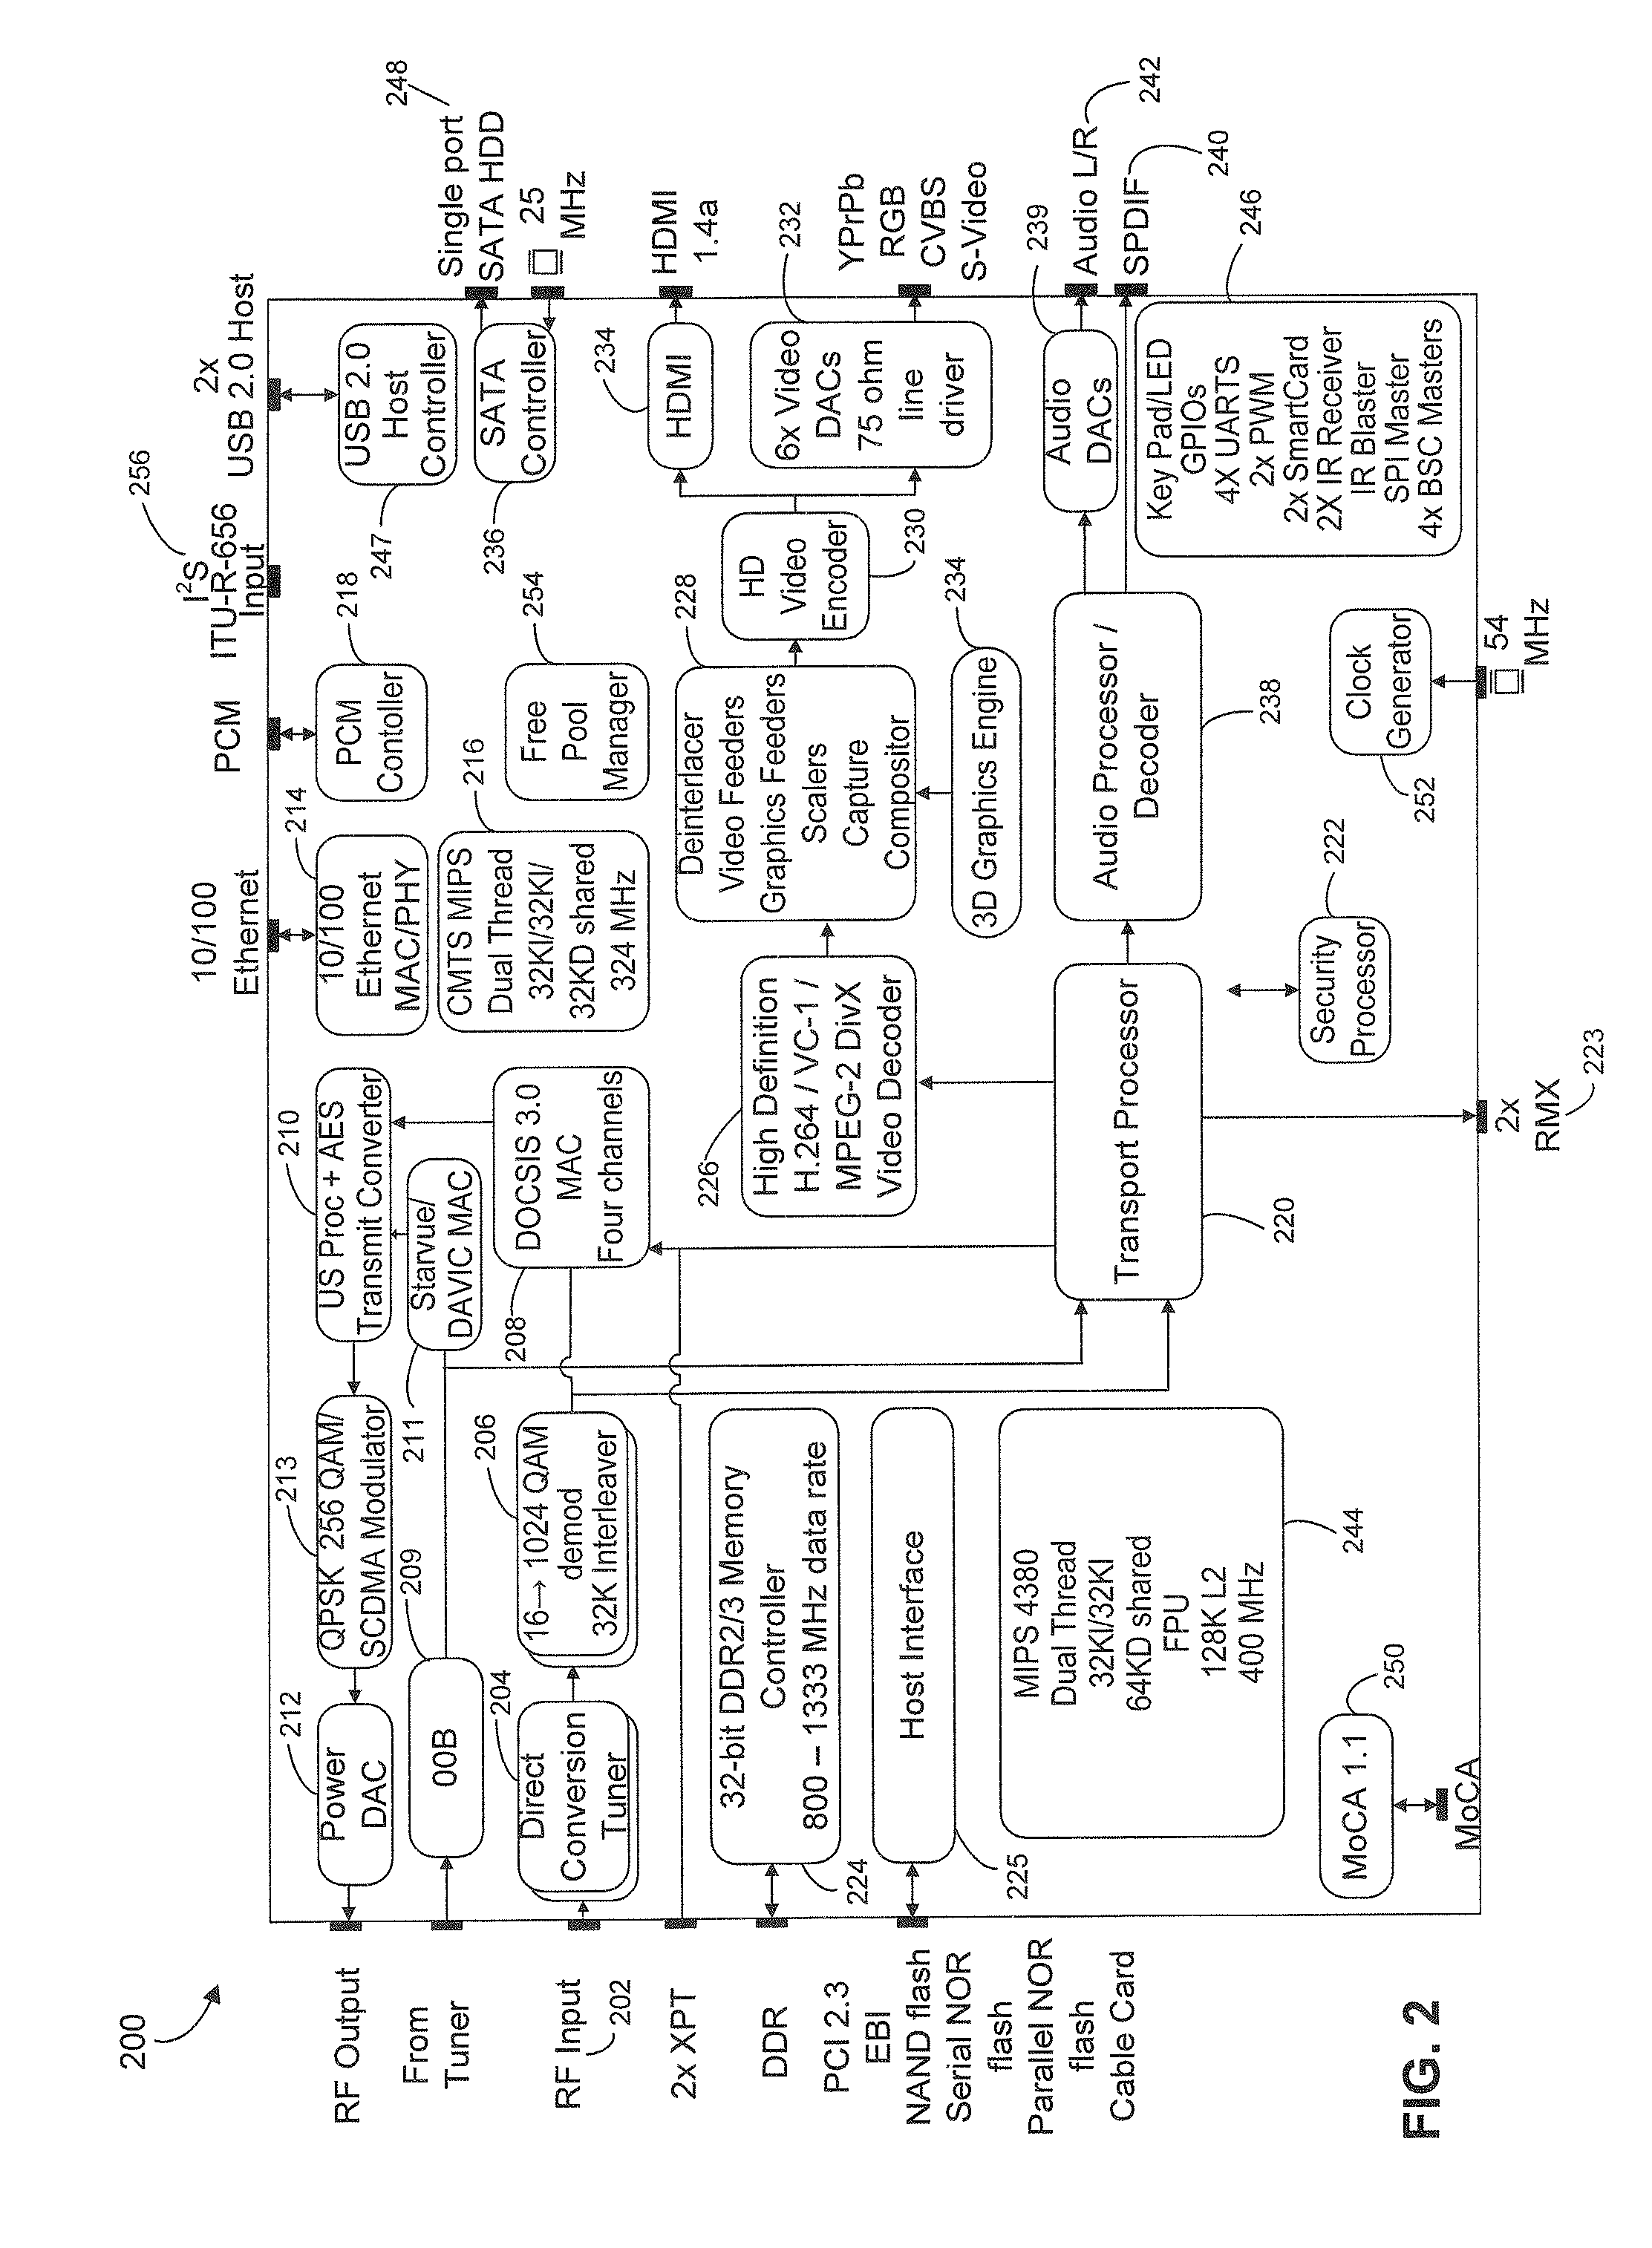 patent us20110197243 - cable set-top box with integrated cable tuner and moca support